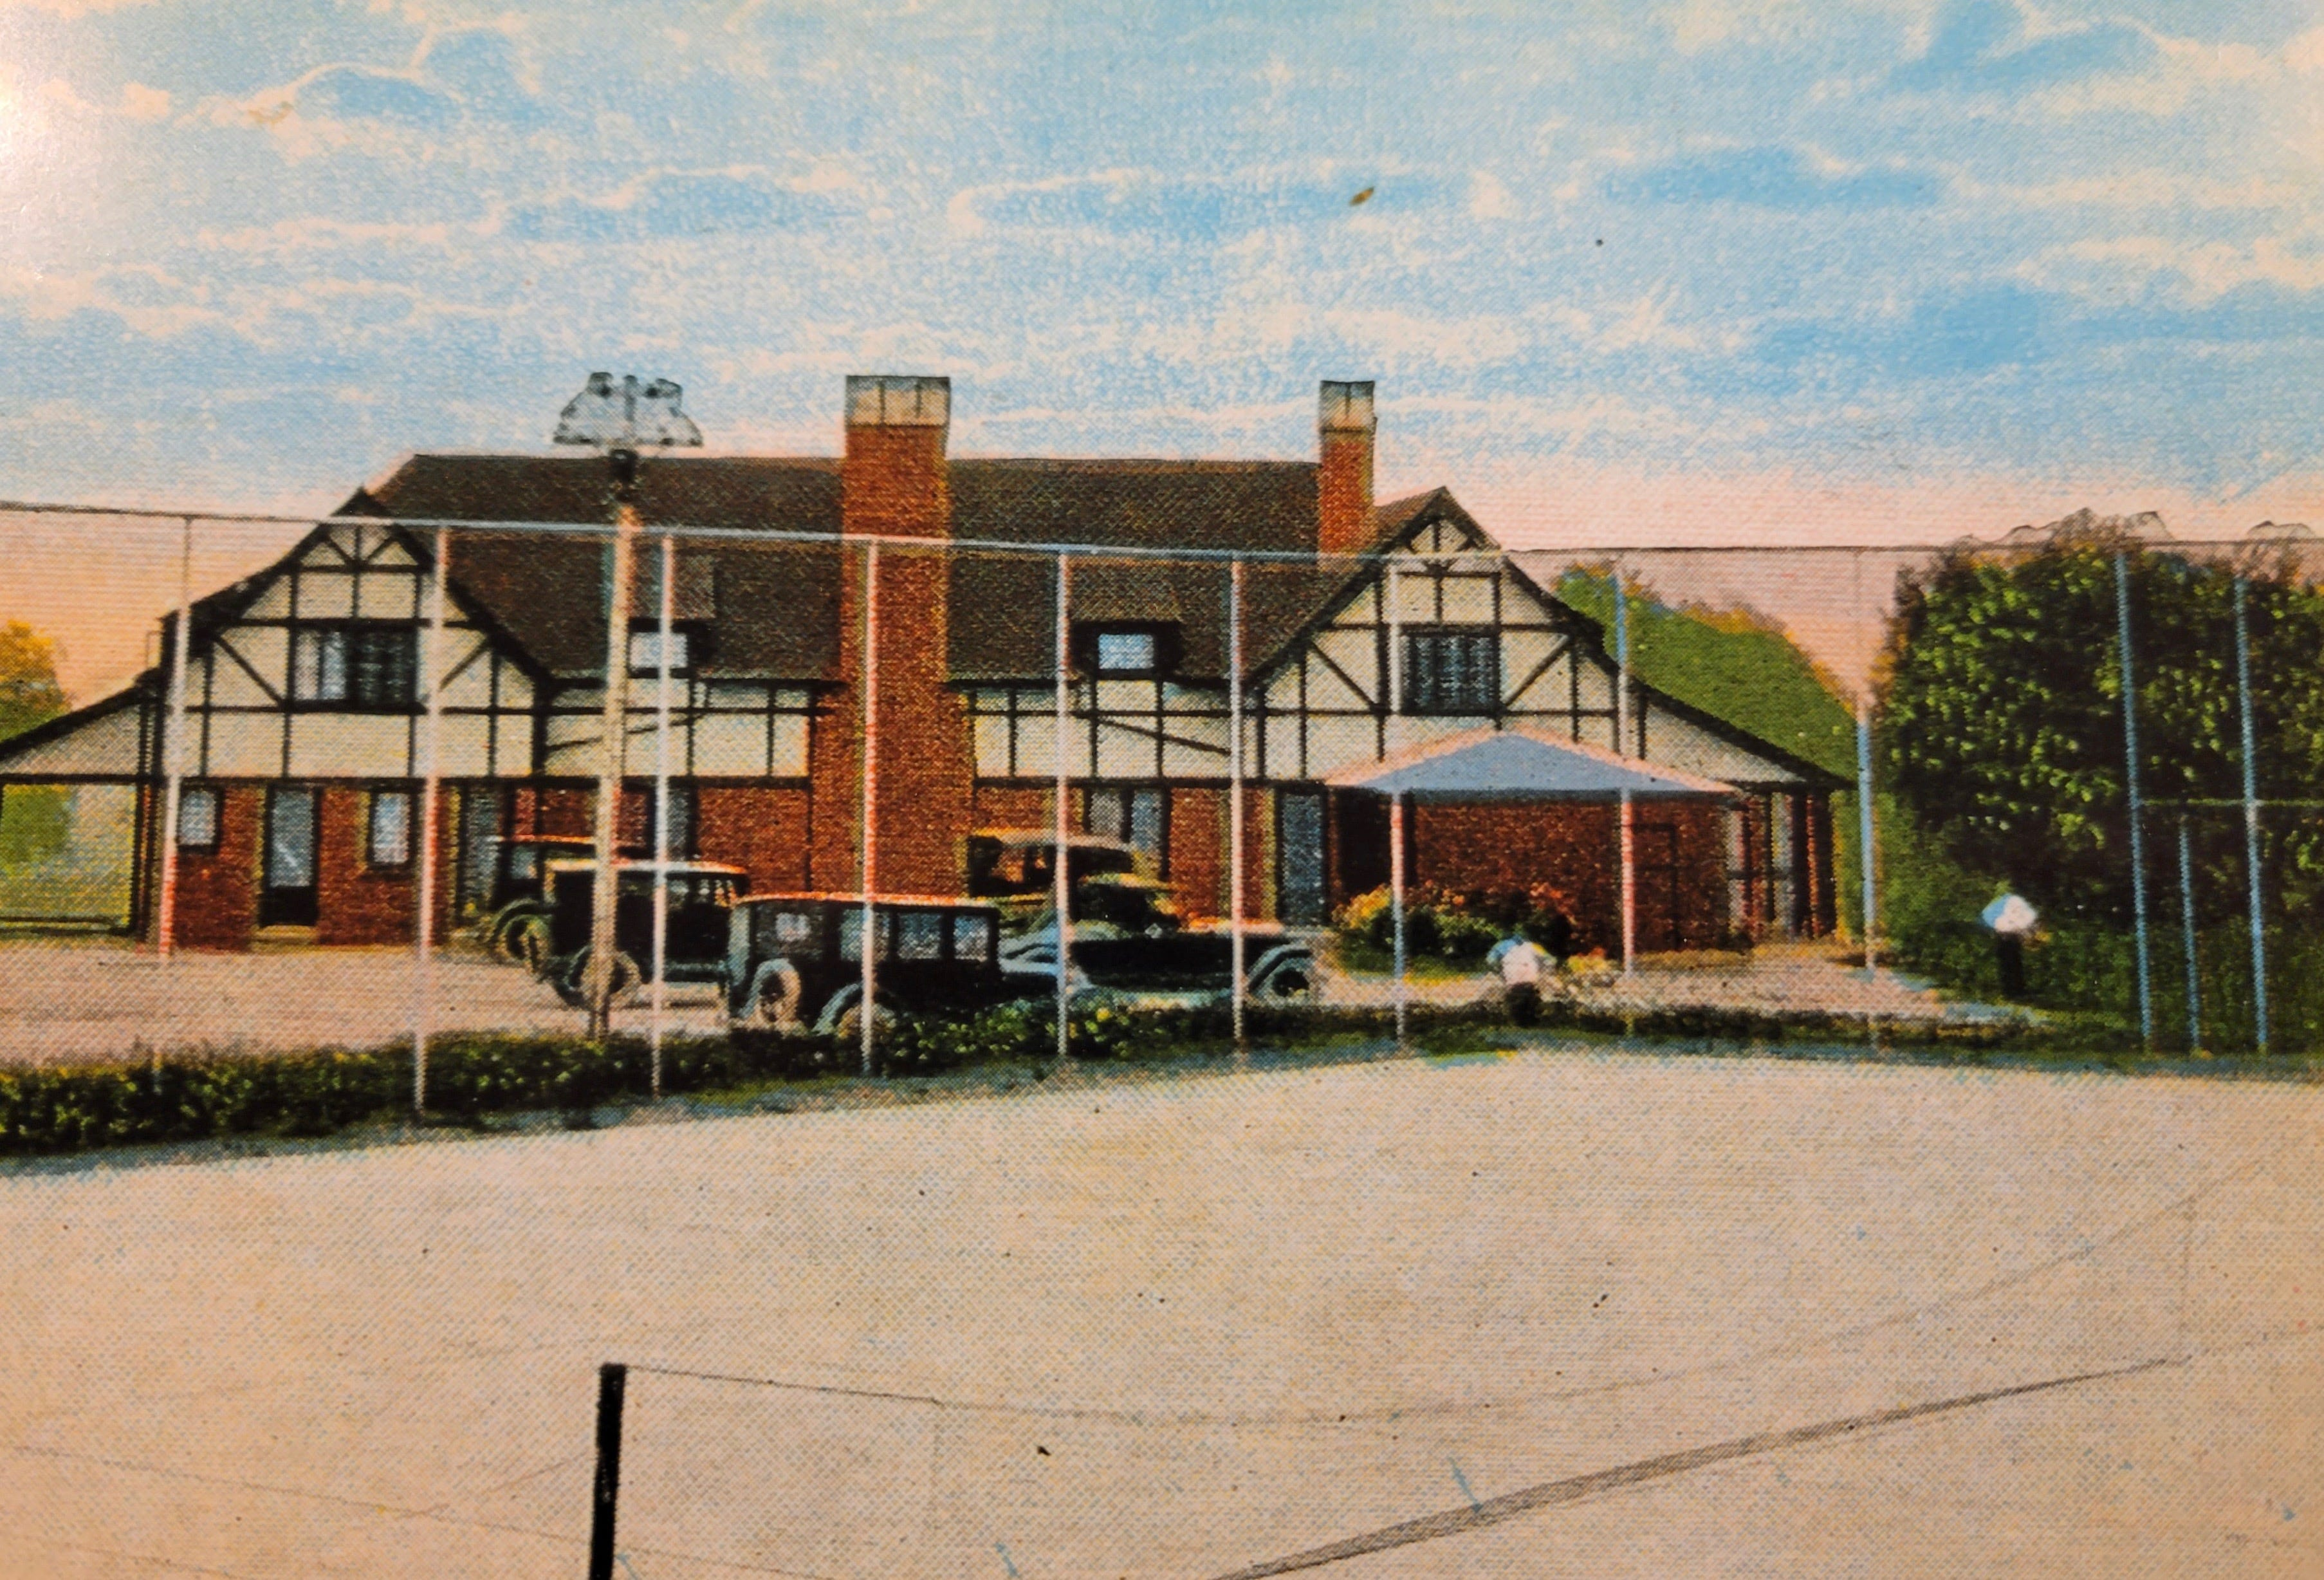 An illustration of Holland Country Club. The club was formed in 1921 by a group of wealthy Holland businessmen, who later purchased 126 acres of property in the city.